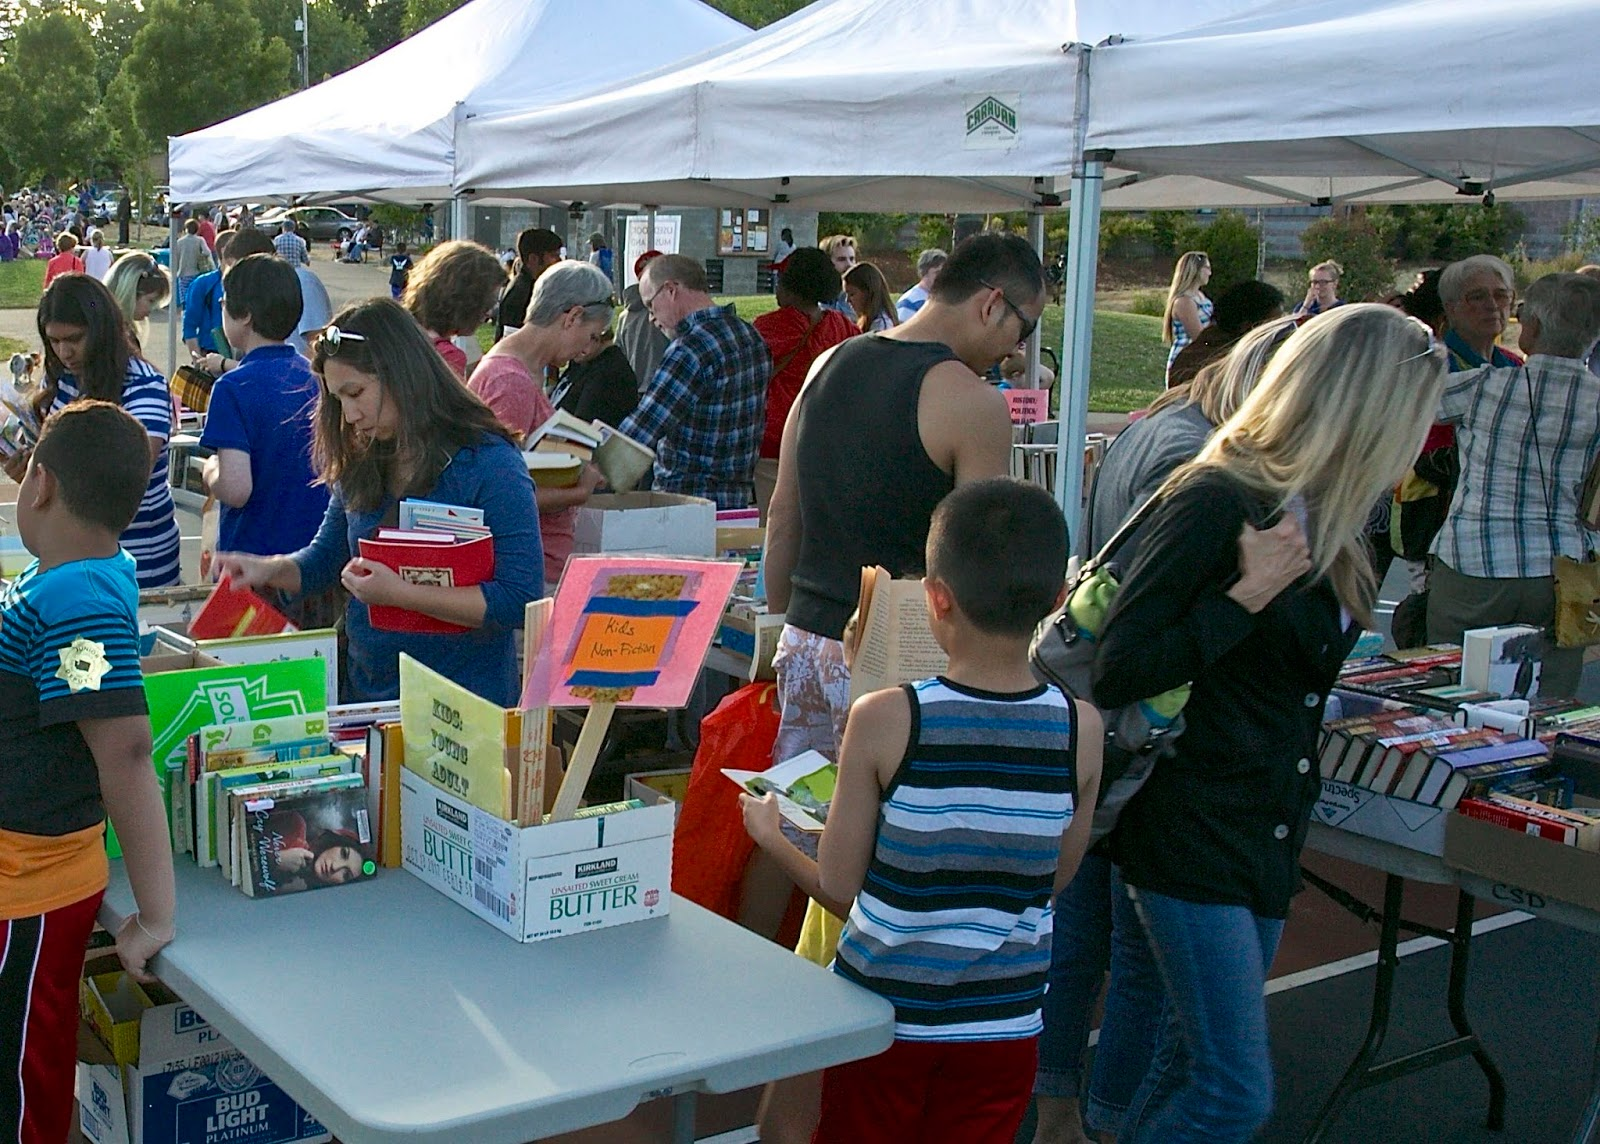 Book Lovers Have Learned To Mark This Event On Their Calendar For The  Council Of Neighborhoods Used Book Sale Always Many Children's Books, And  Readable